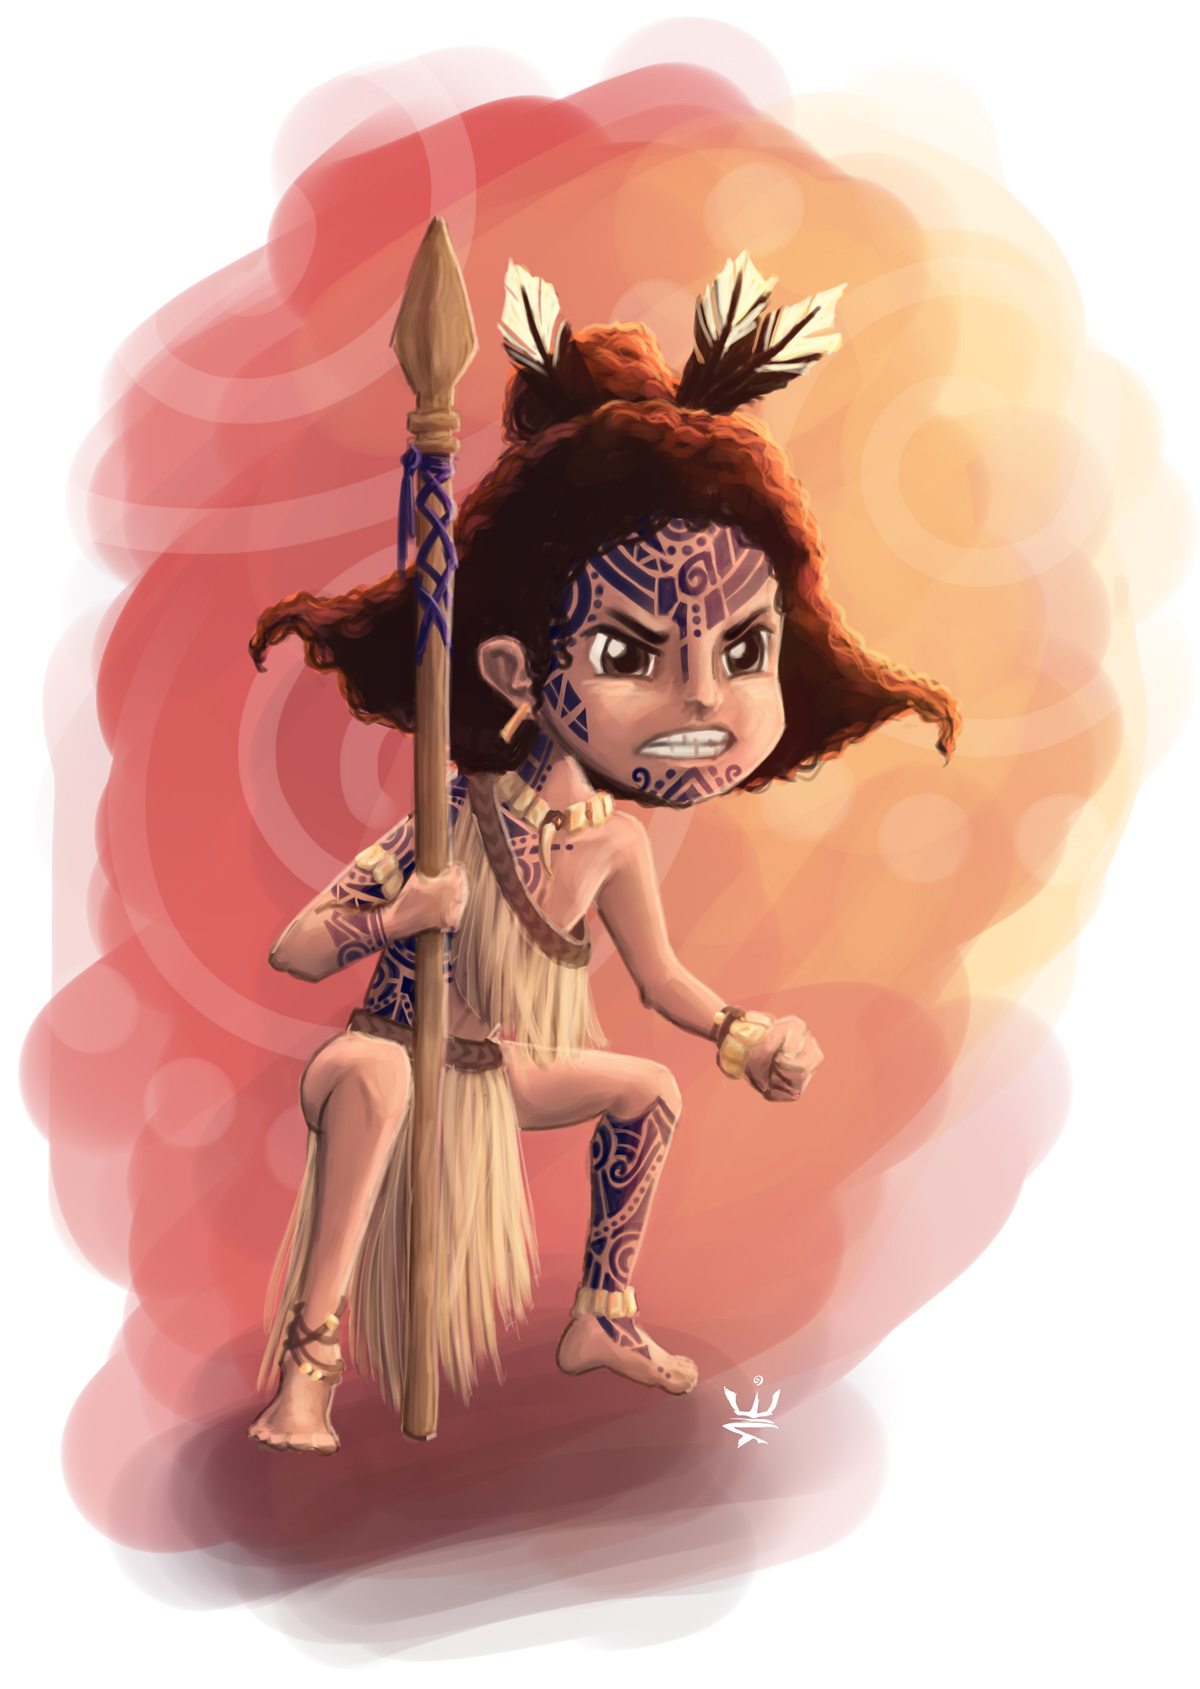 Little Maori Warrior (c) Esther Wagner